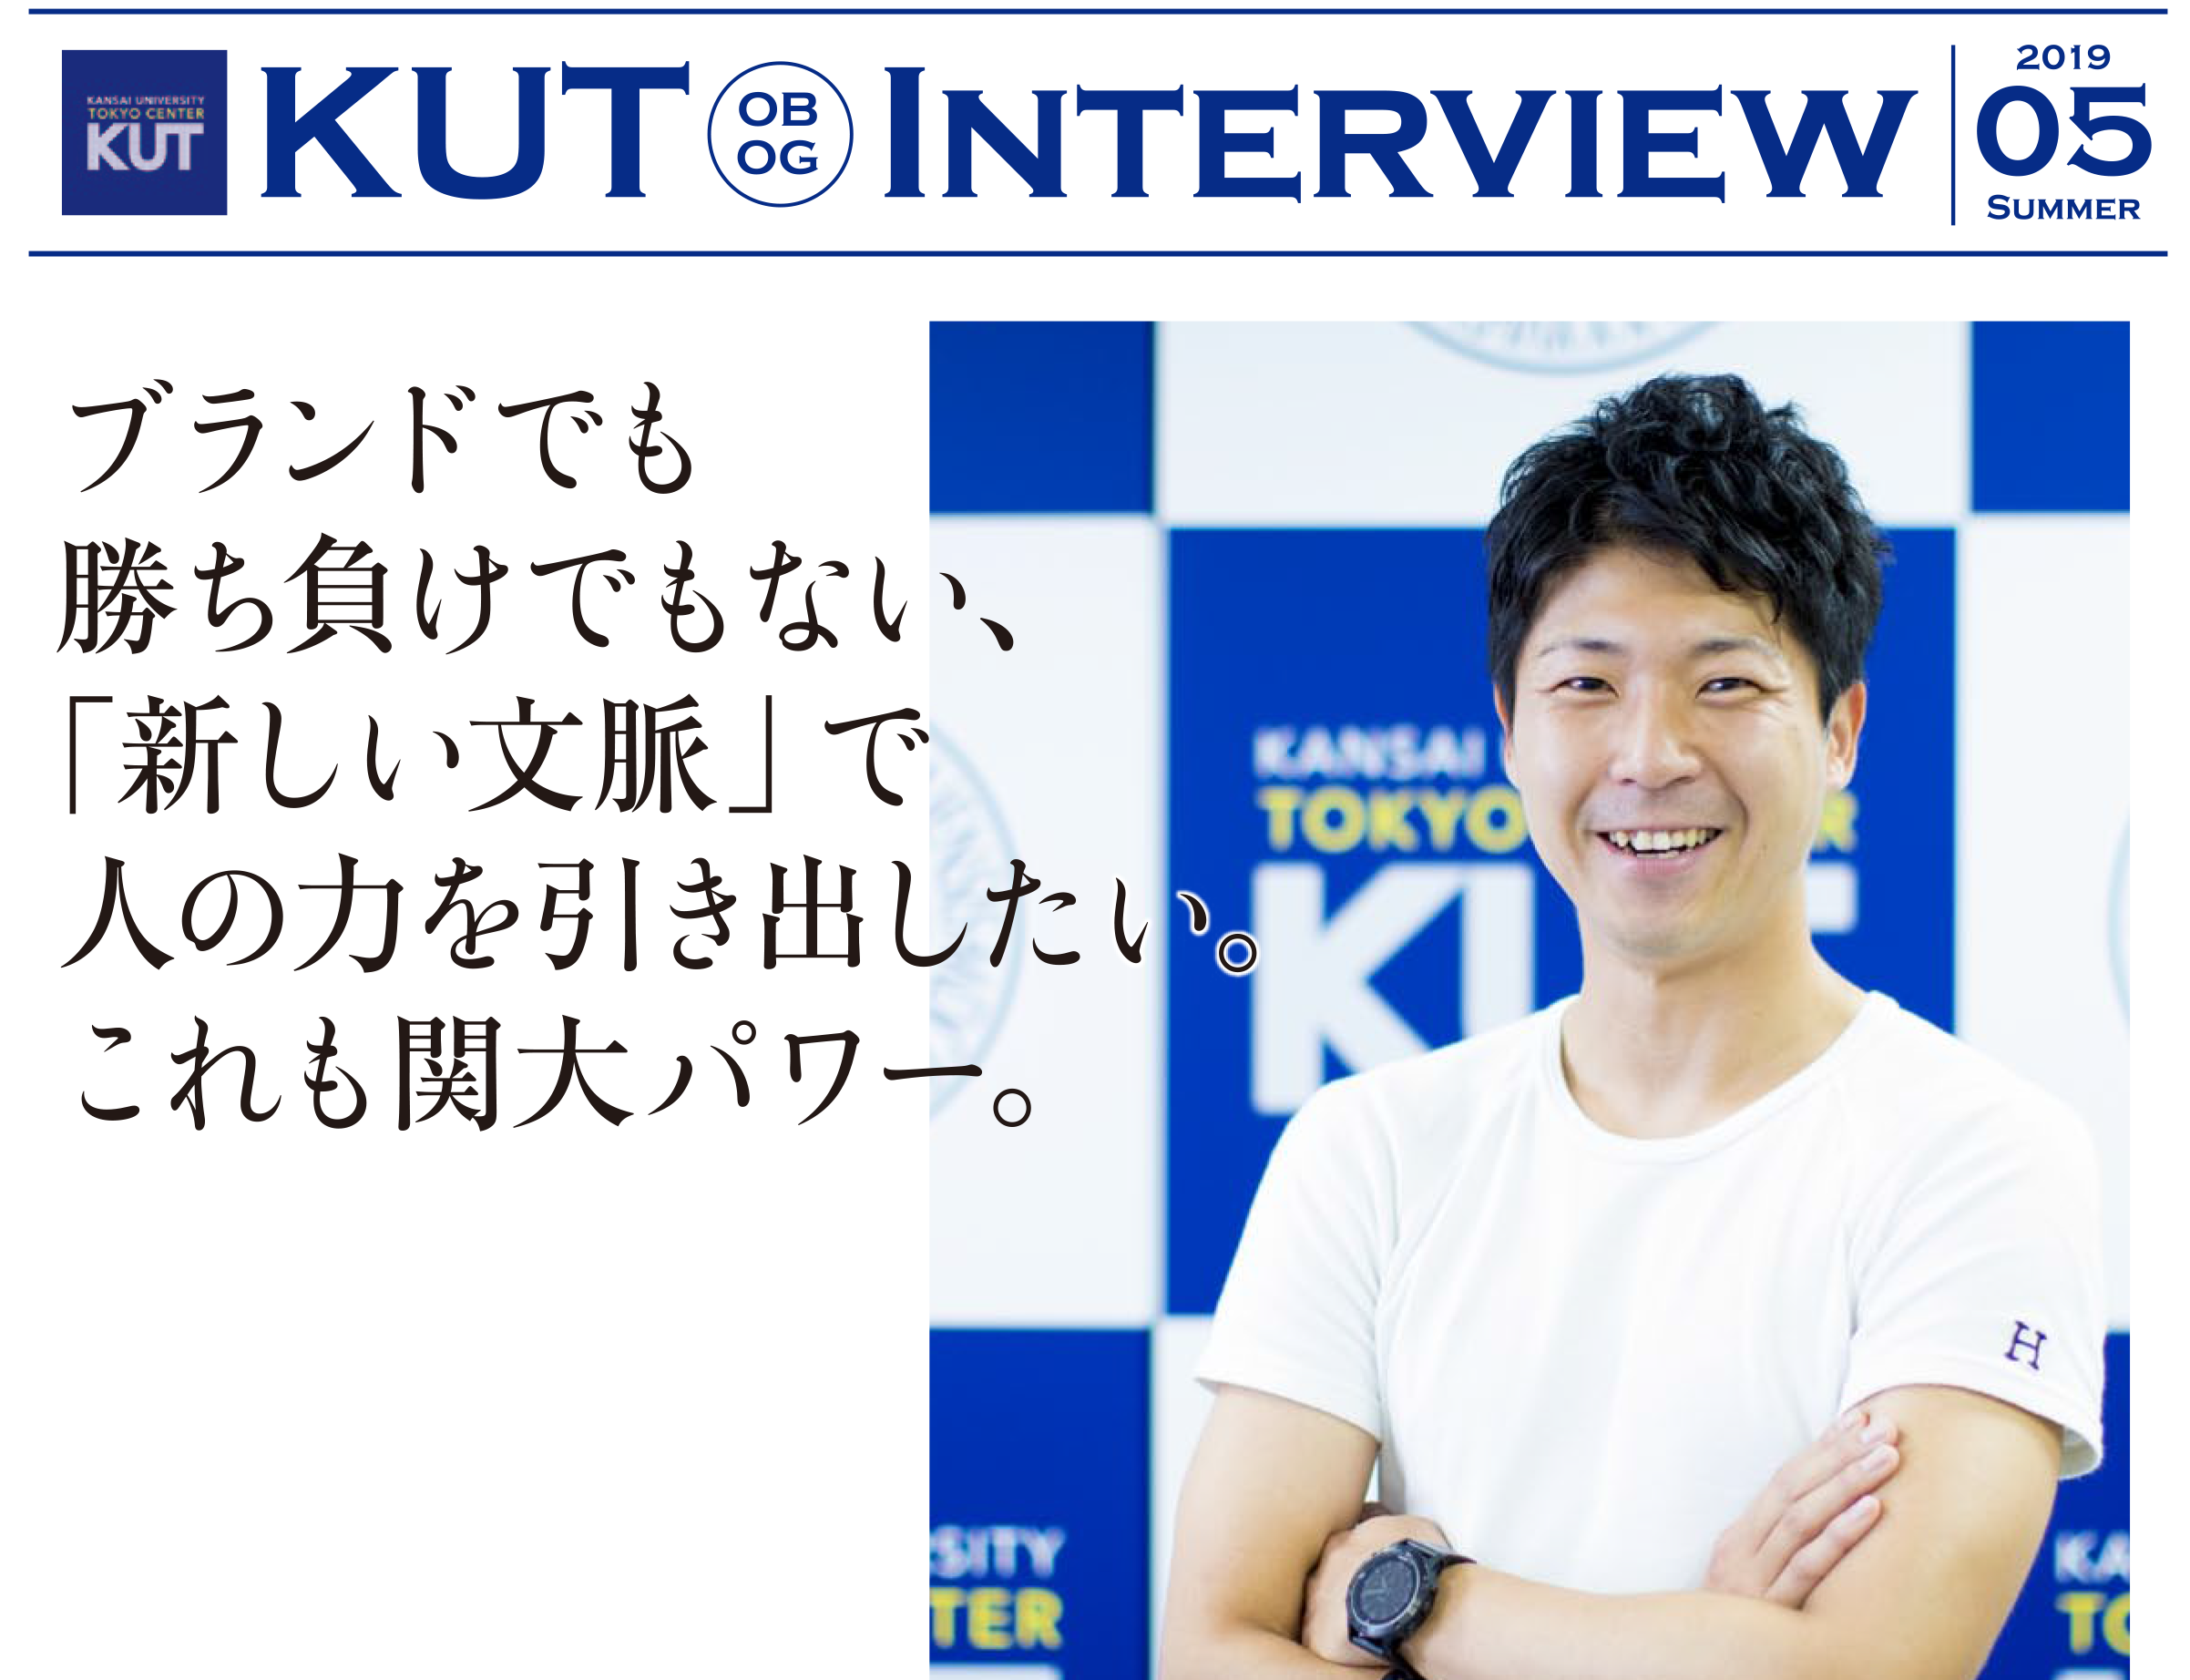 <KUT INTERVIEW 第5号> 首都圏で活躍する卒業生をご紹介します